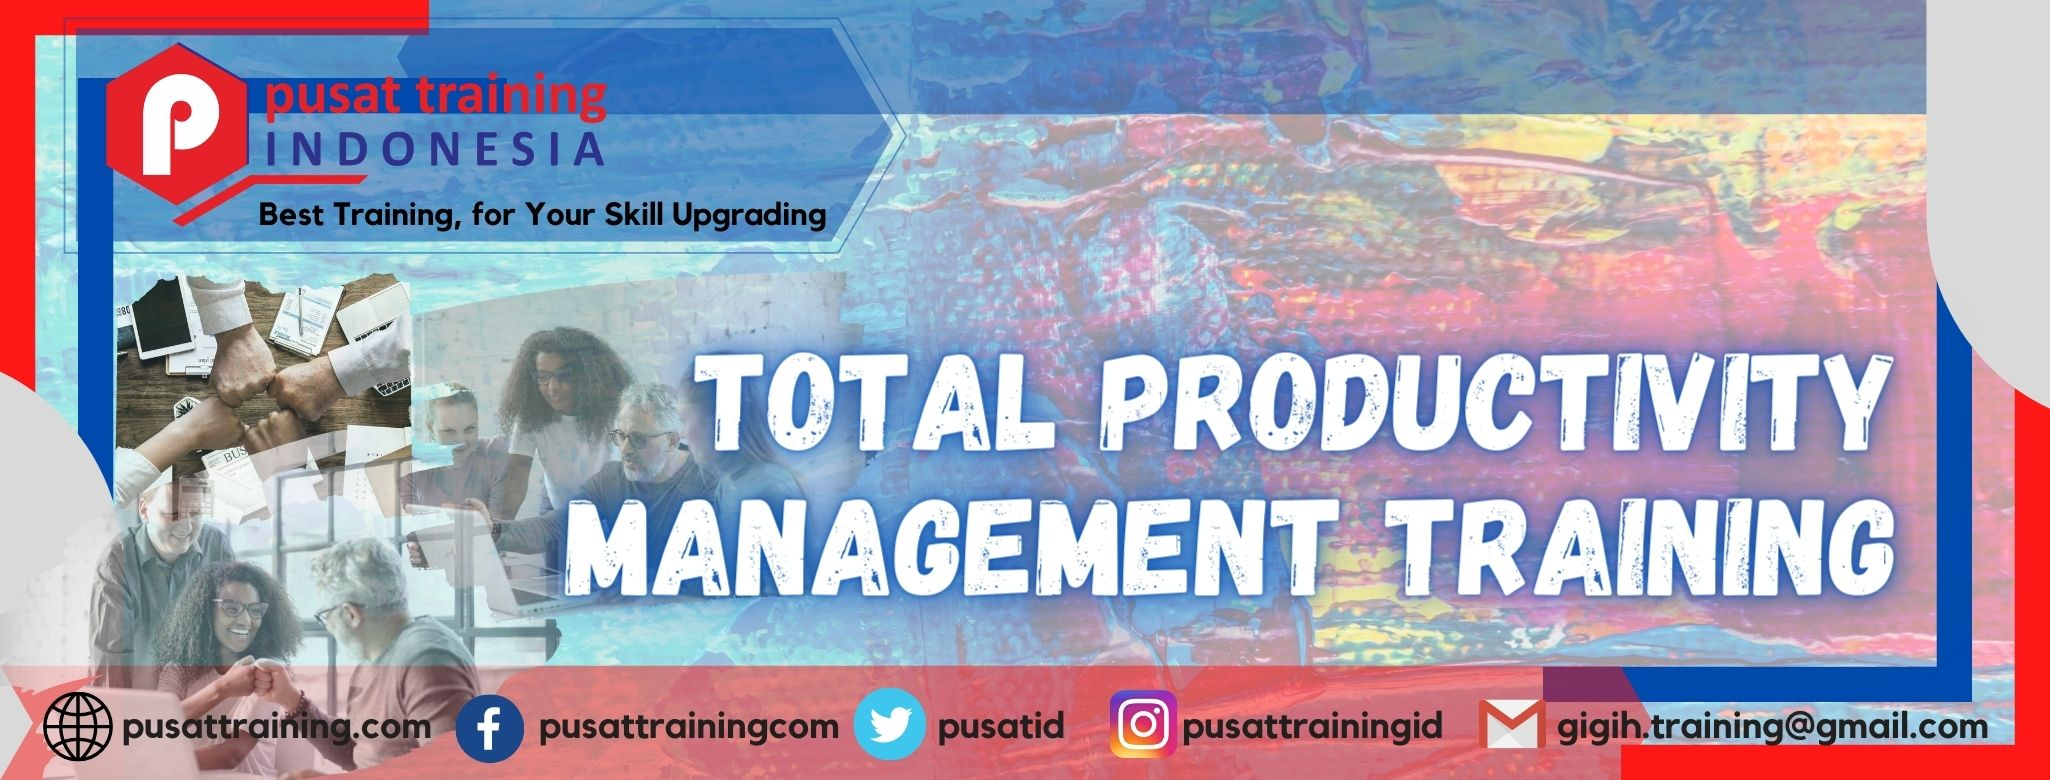 total-productivity-management-training